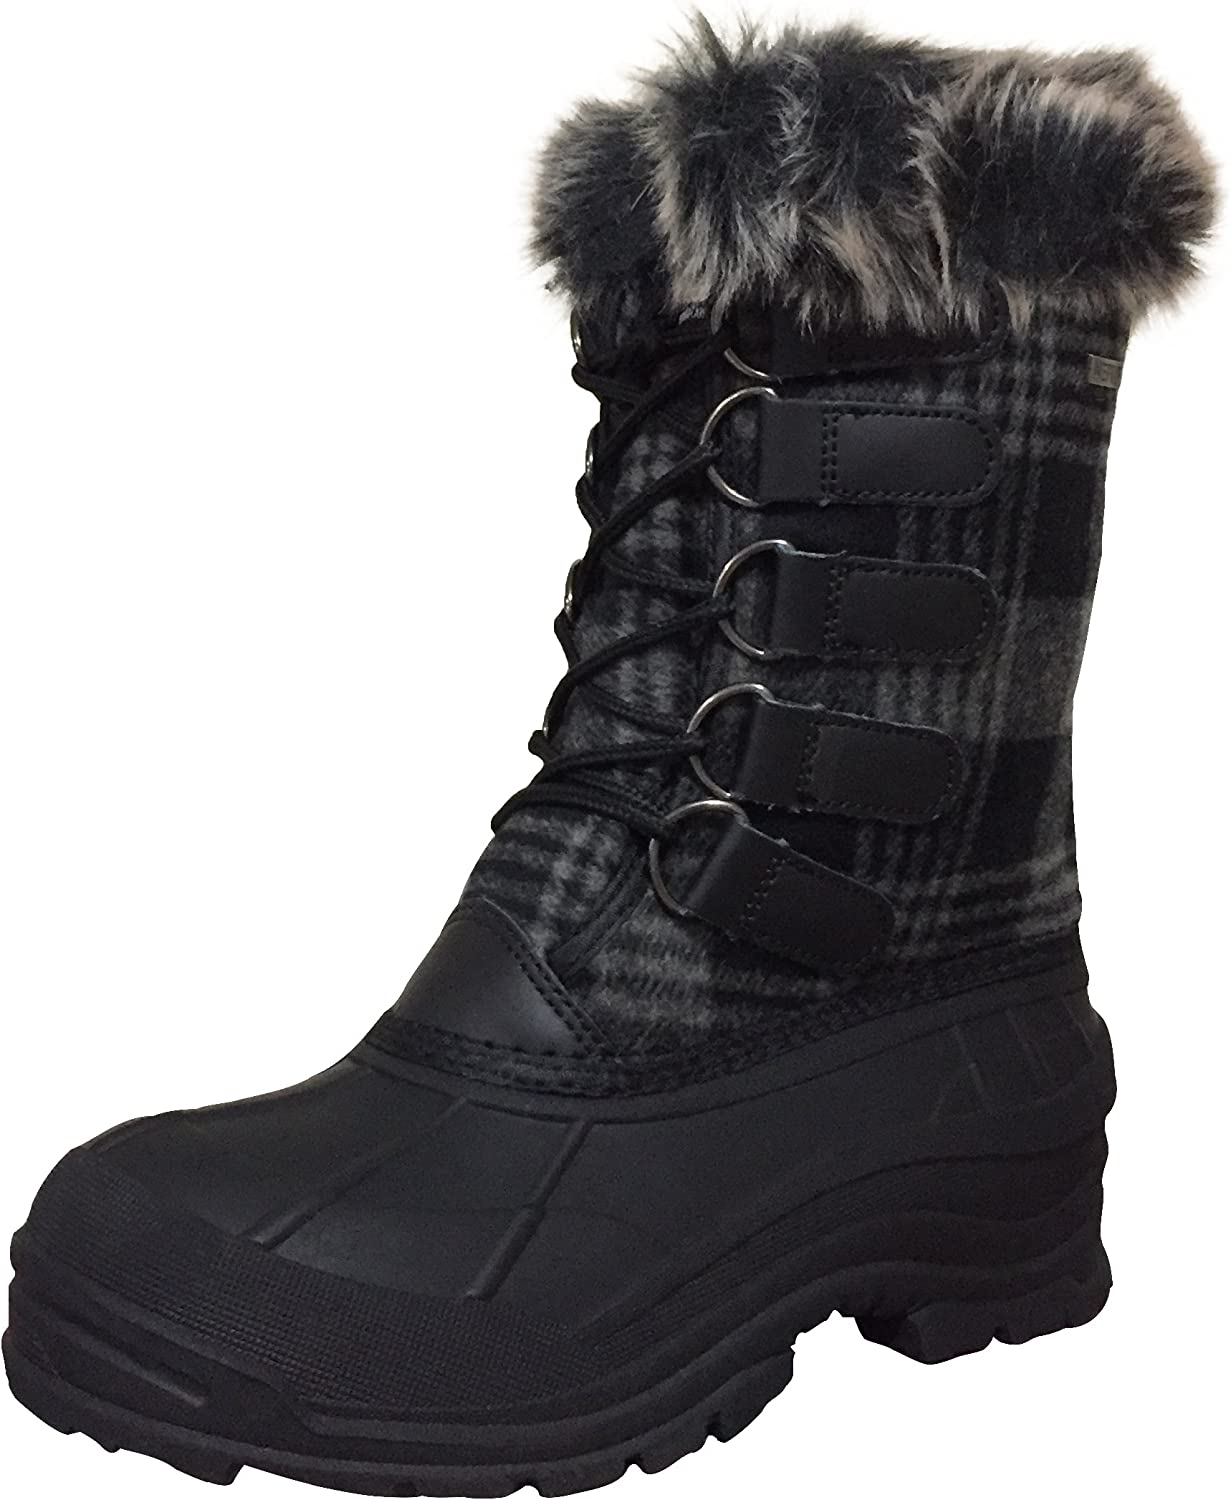 Climate X Womens YC4 Snow Boots